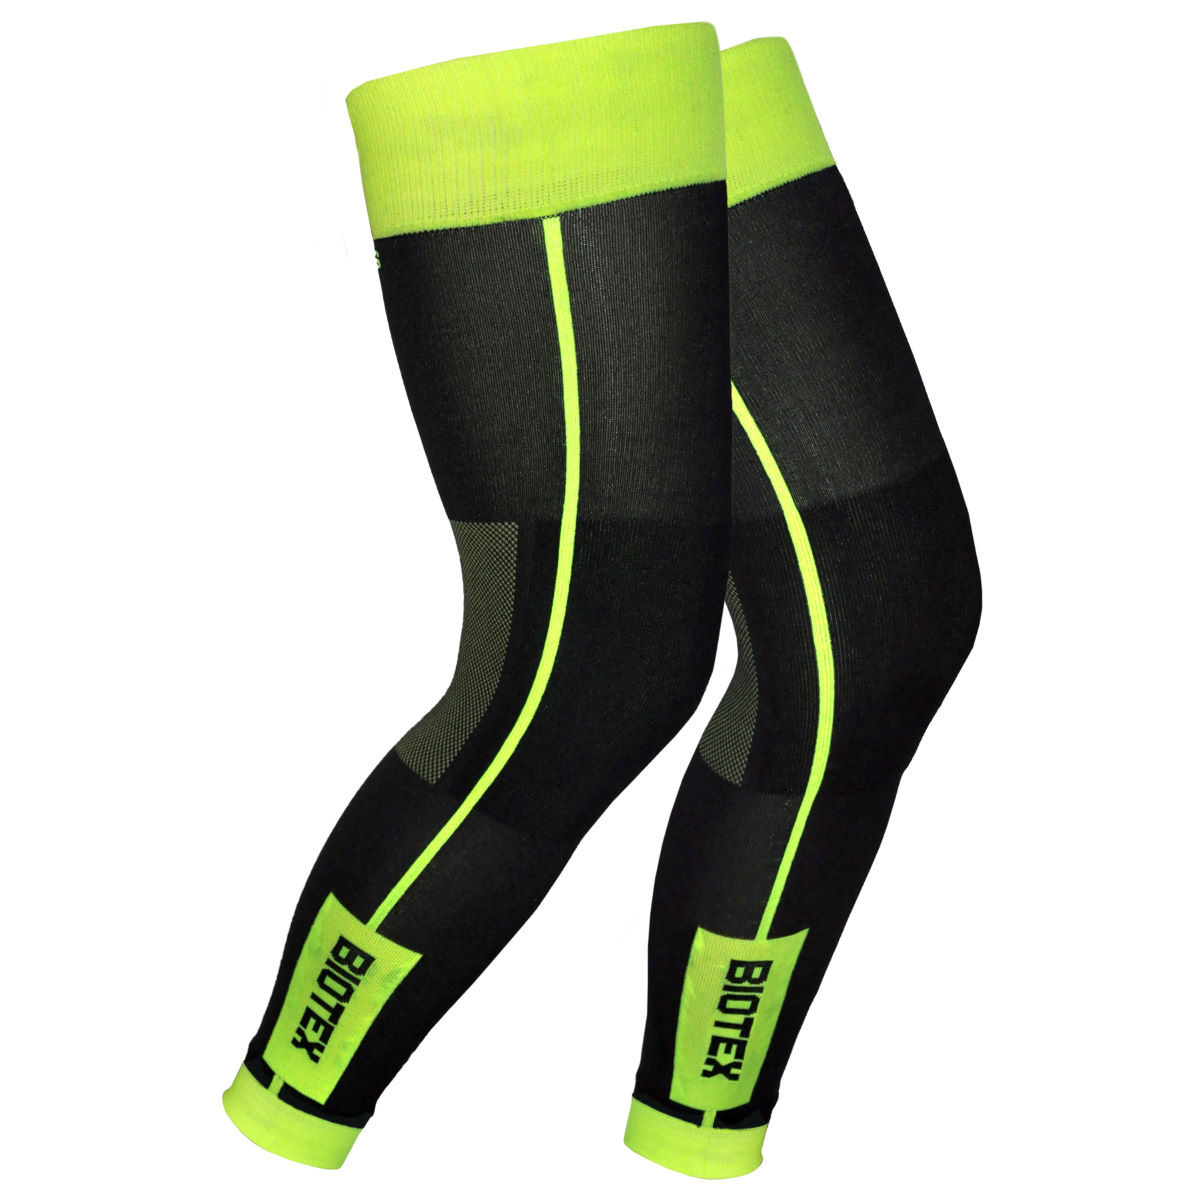 Biotex Thermal Leg Warmers